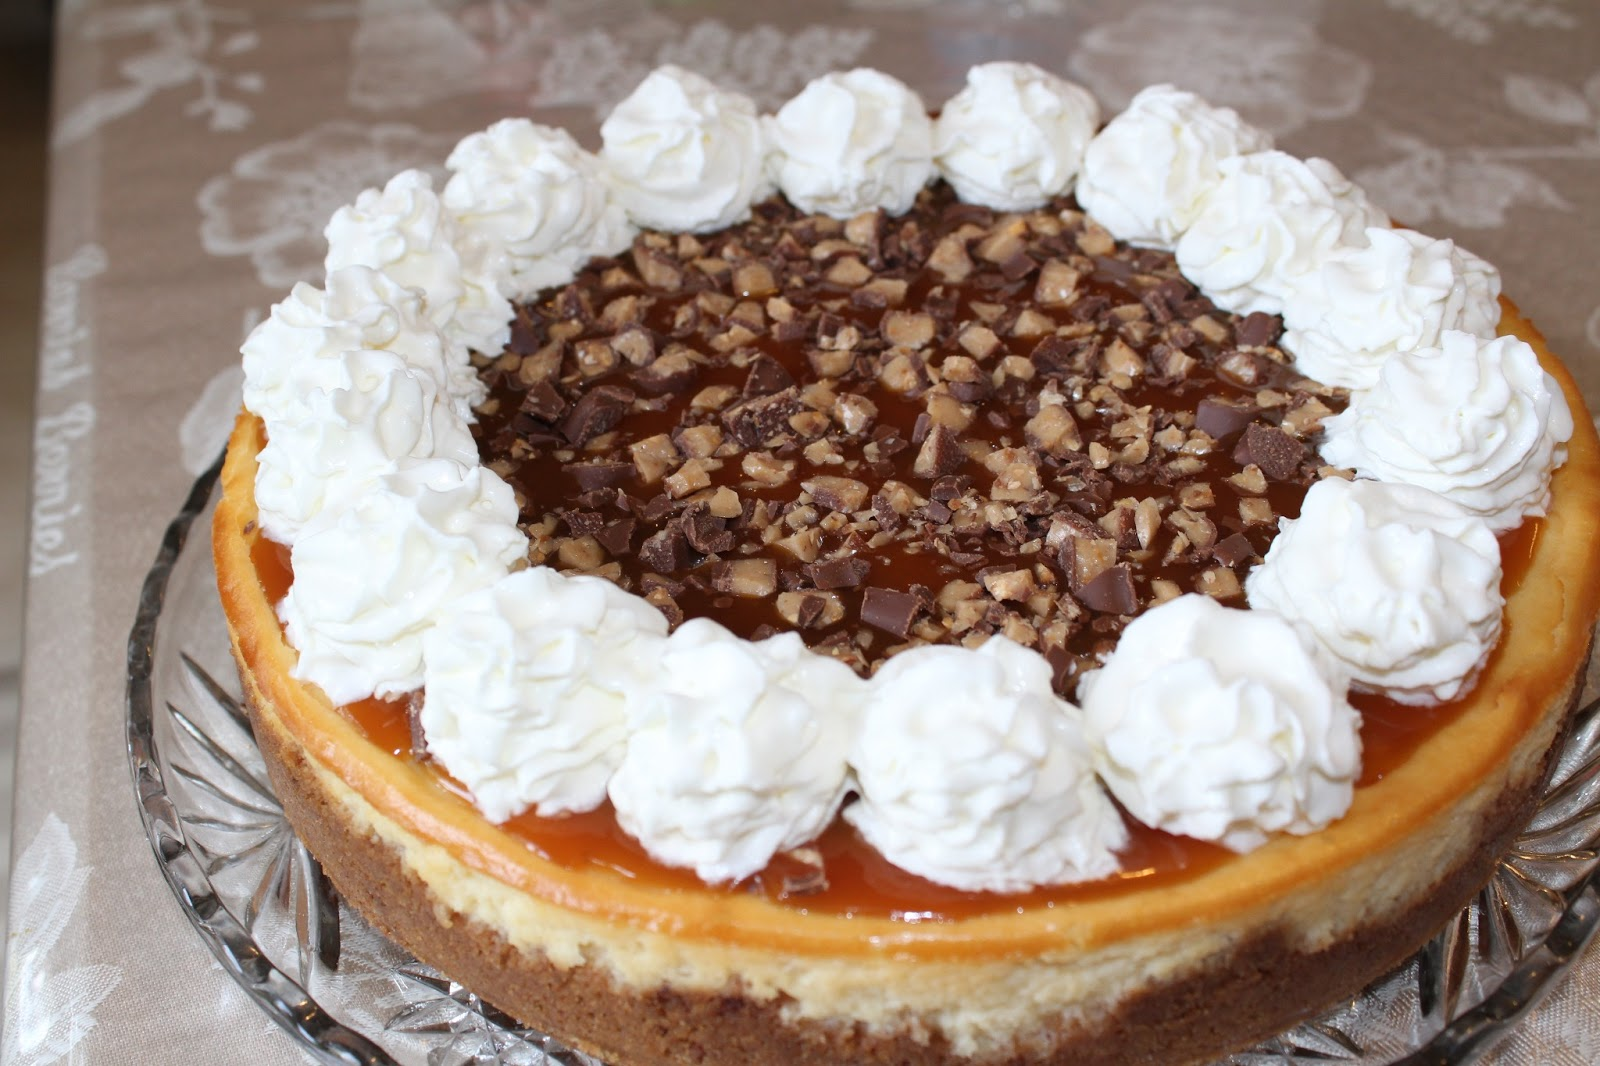 Blog as you Bake: Caramel Toffee Crunch Cheesecake